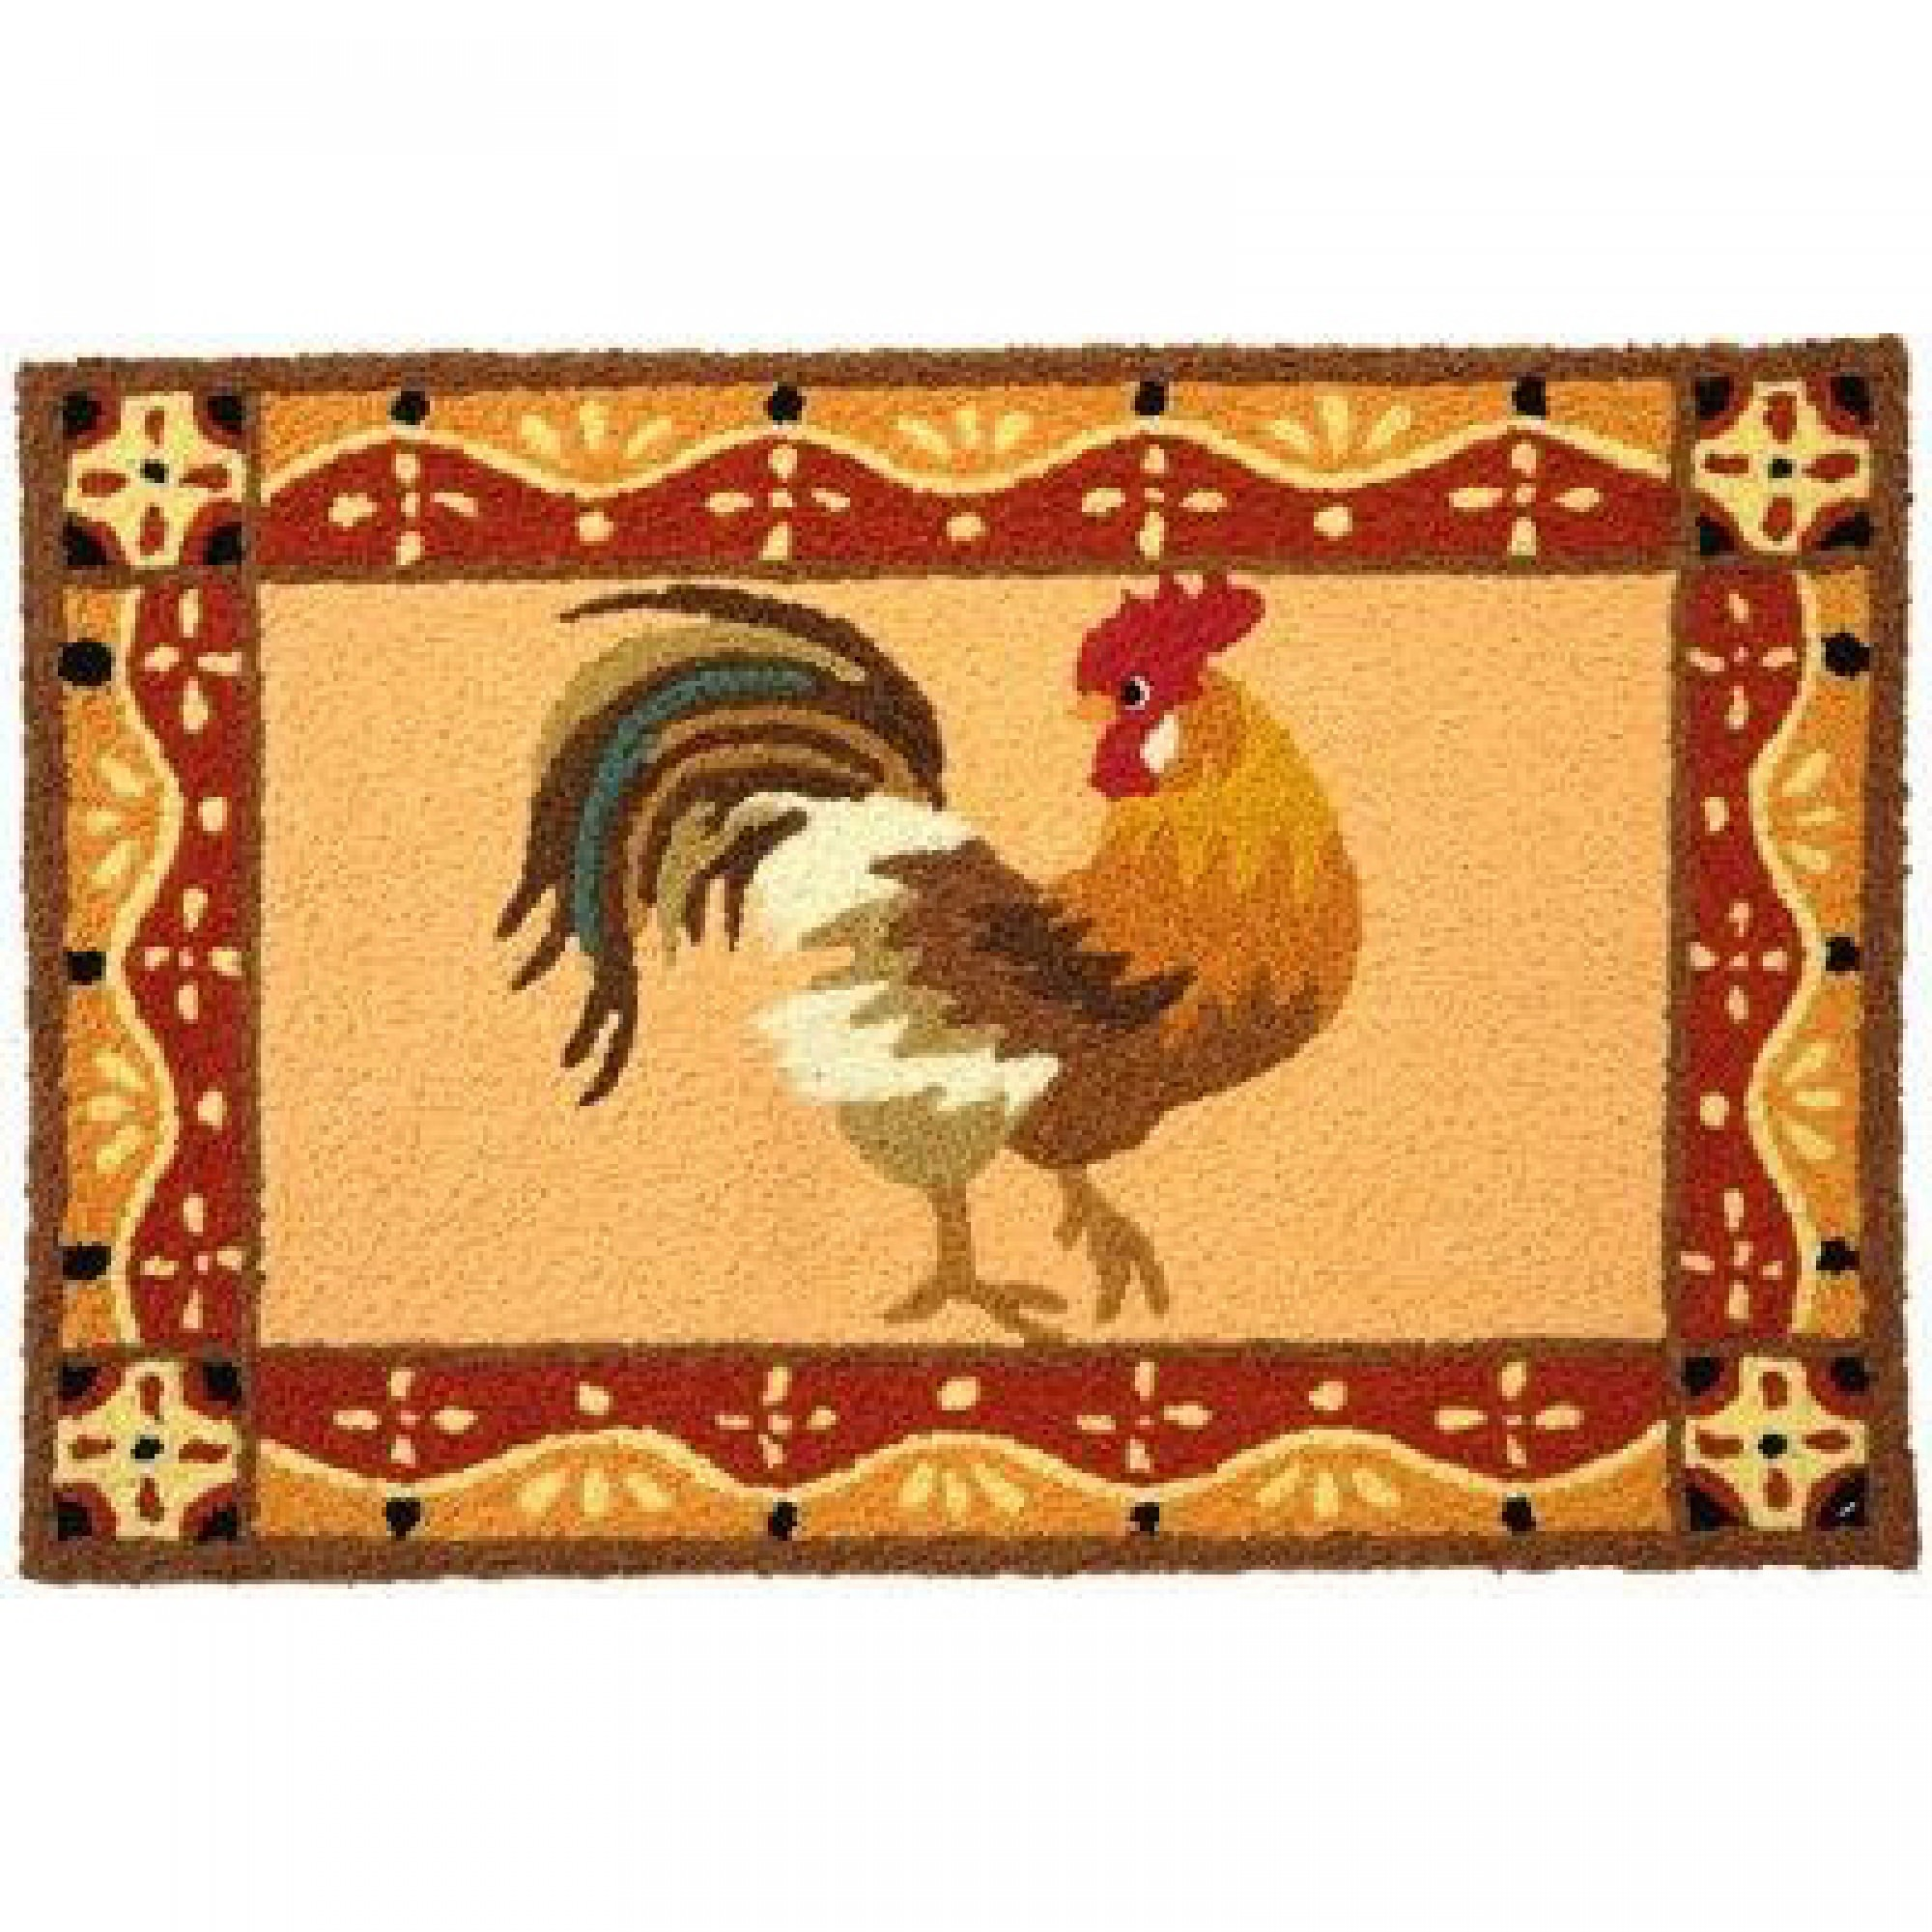 Charmant Jellybean Barnyard Rooster Rug Outdoor Door Mat